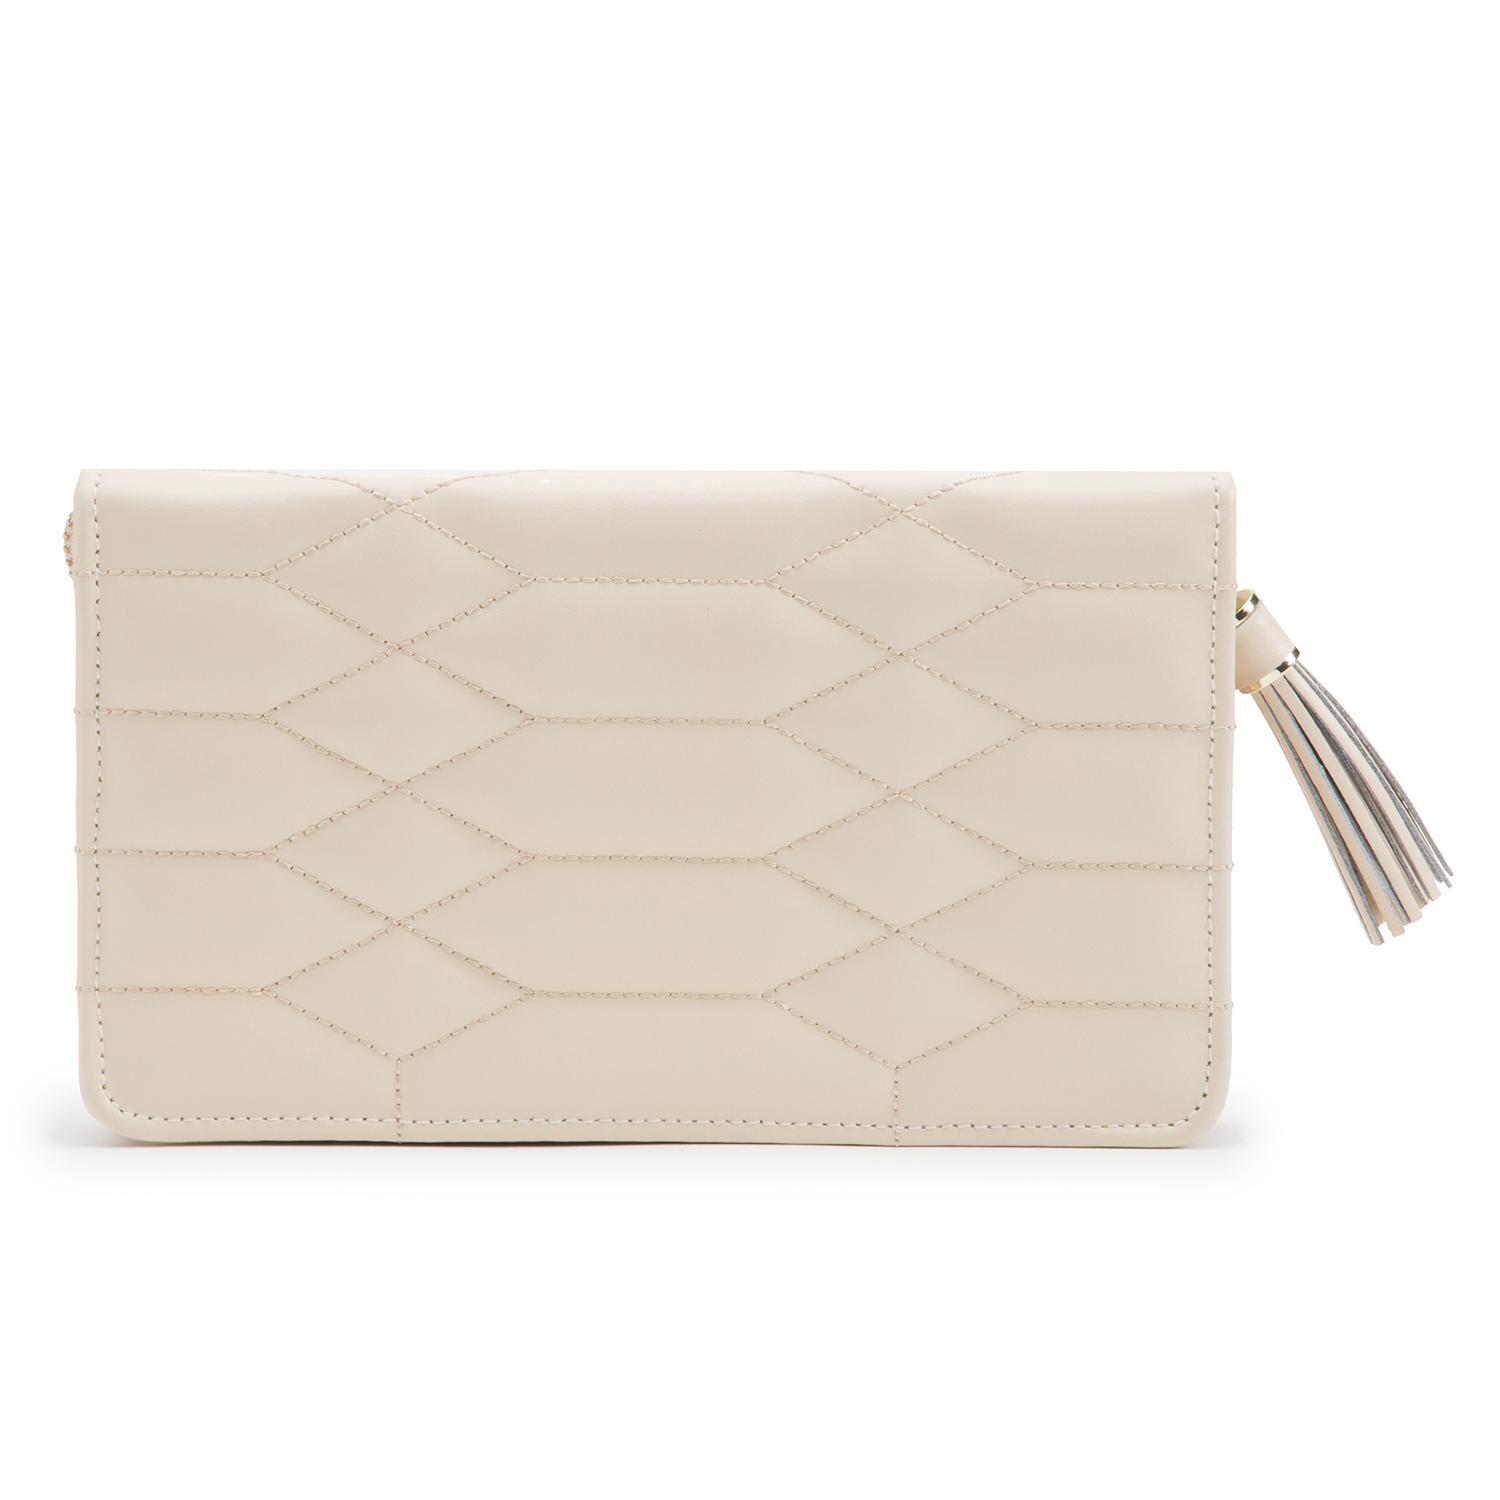 WOLF THE ALKEMISTRY CREAM QUILTED LEATHER JEWELLERY POUCH